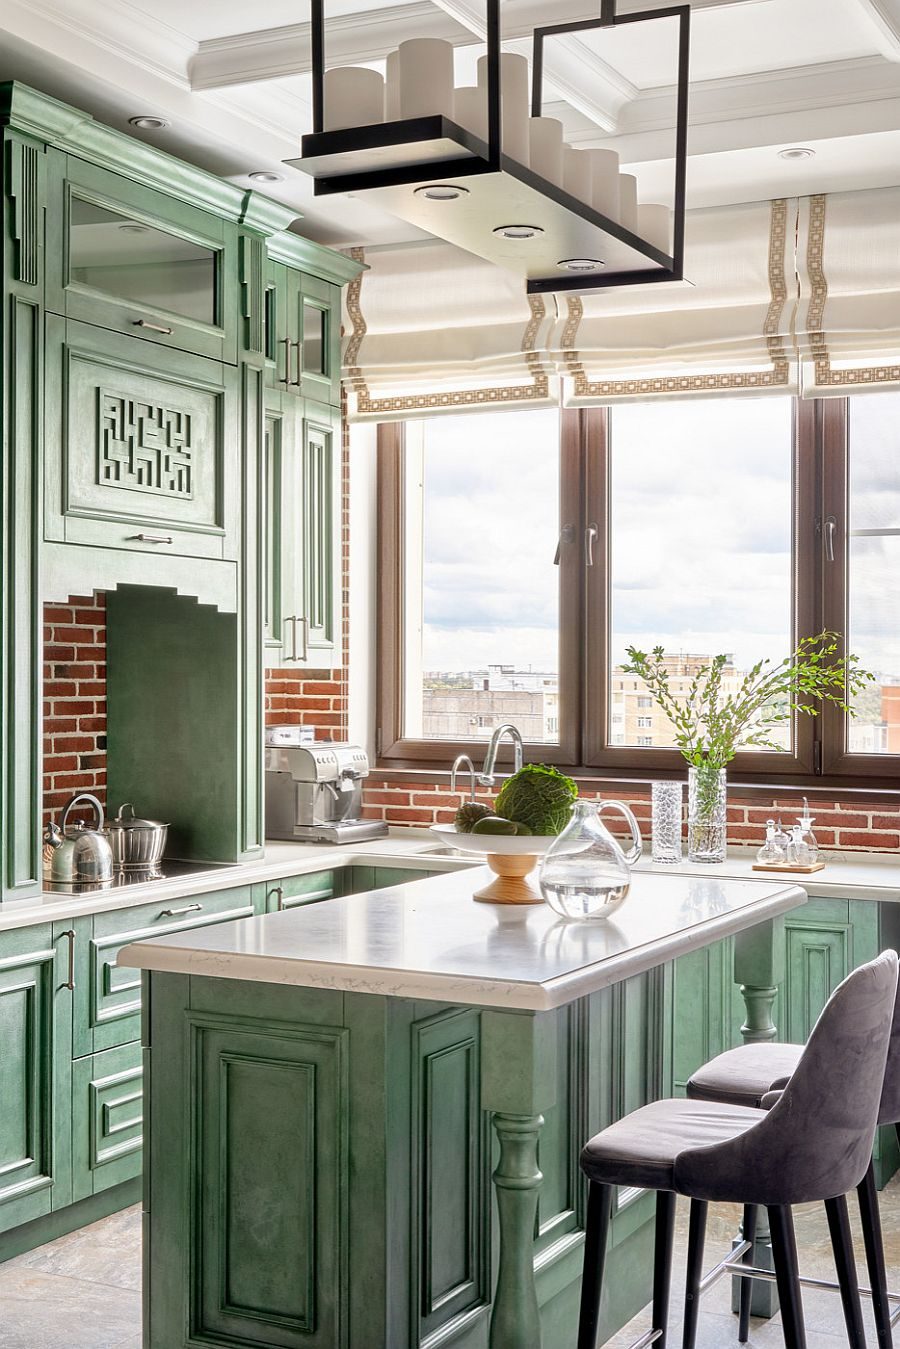 Brick coupled with darker shade of green in the modern-classic kitchen with unique cabinets